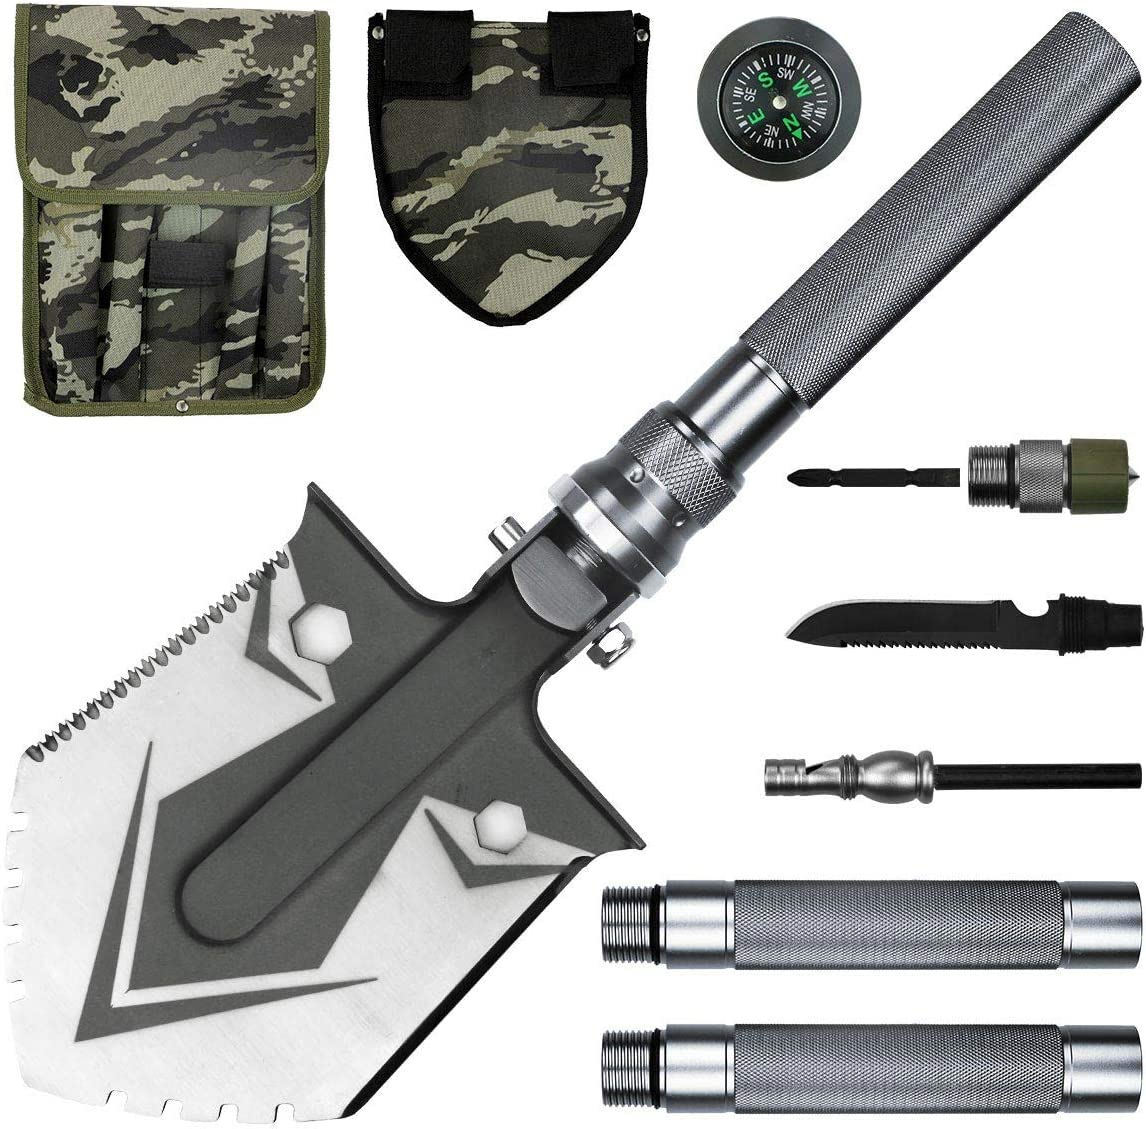 BACOENG Compact Folding Shovel 31 inch Length with MOLLE Pouch – Tactical Multitool Spade Kit for Camping, Hiking, Backpacking, Fishing, Trench Entrenching Tool etc